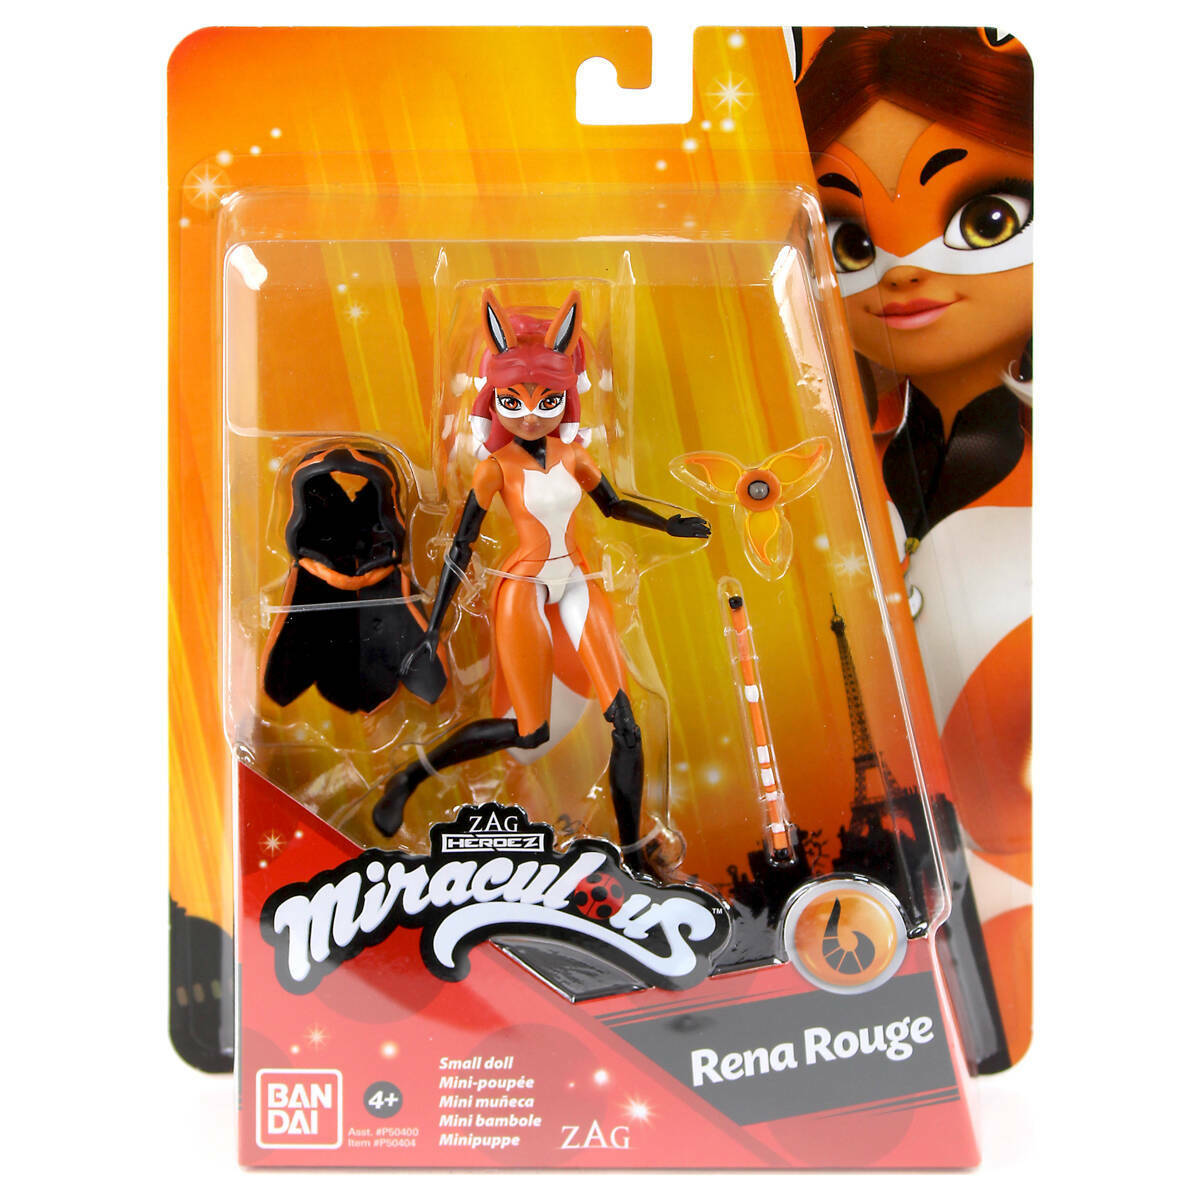 Miraculous Ladybug 12cm Rena Rouge: flute weapon and a removable cape